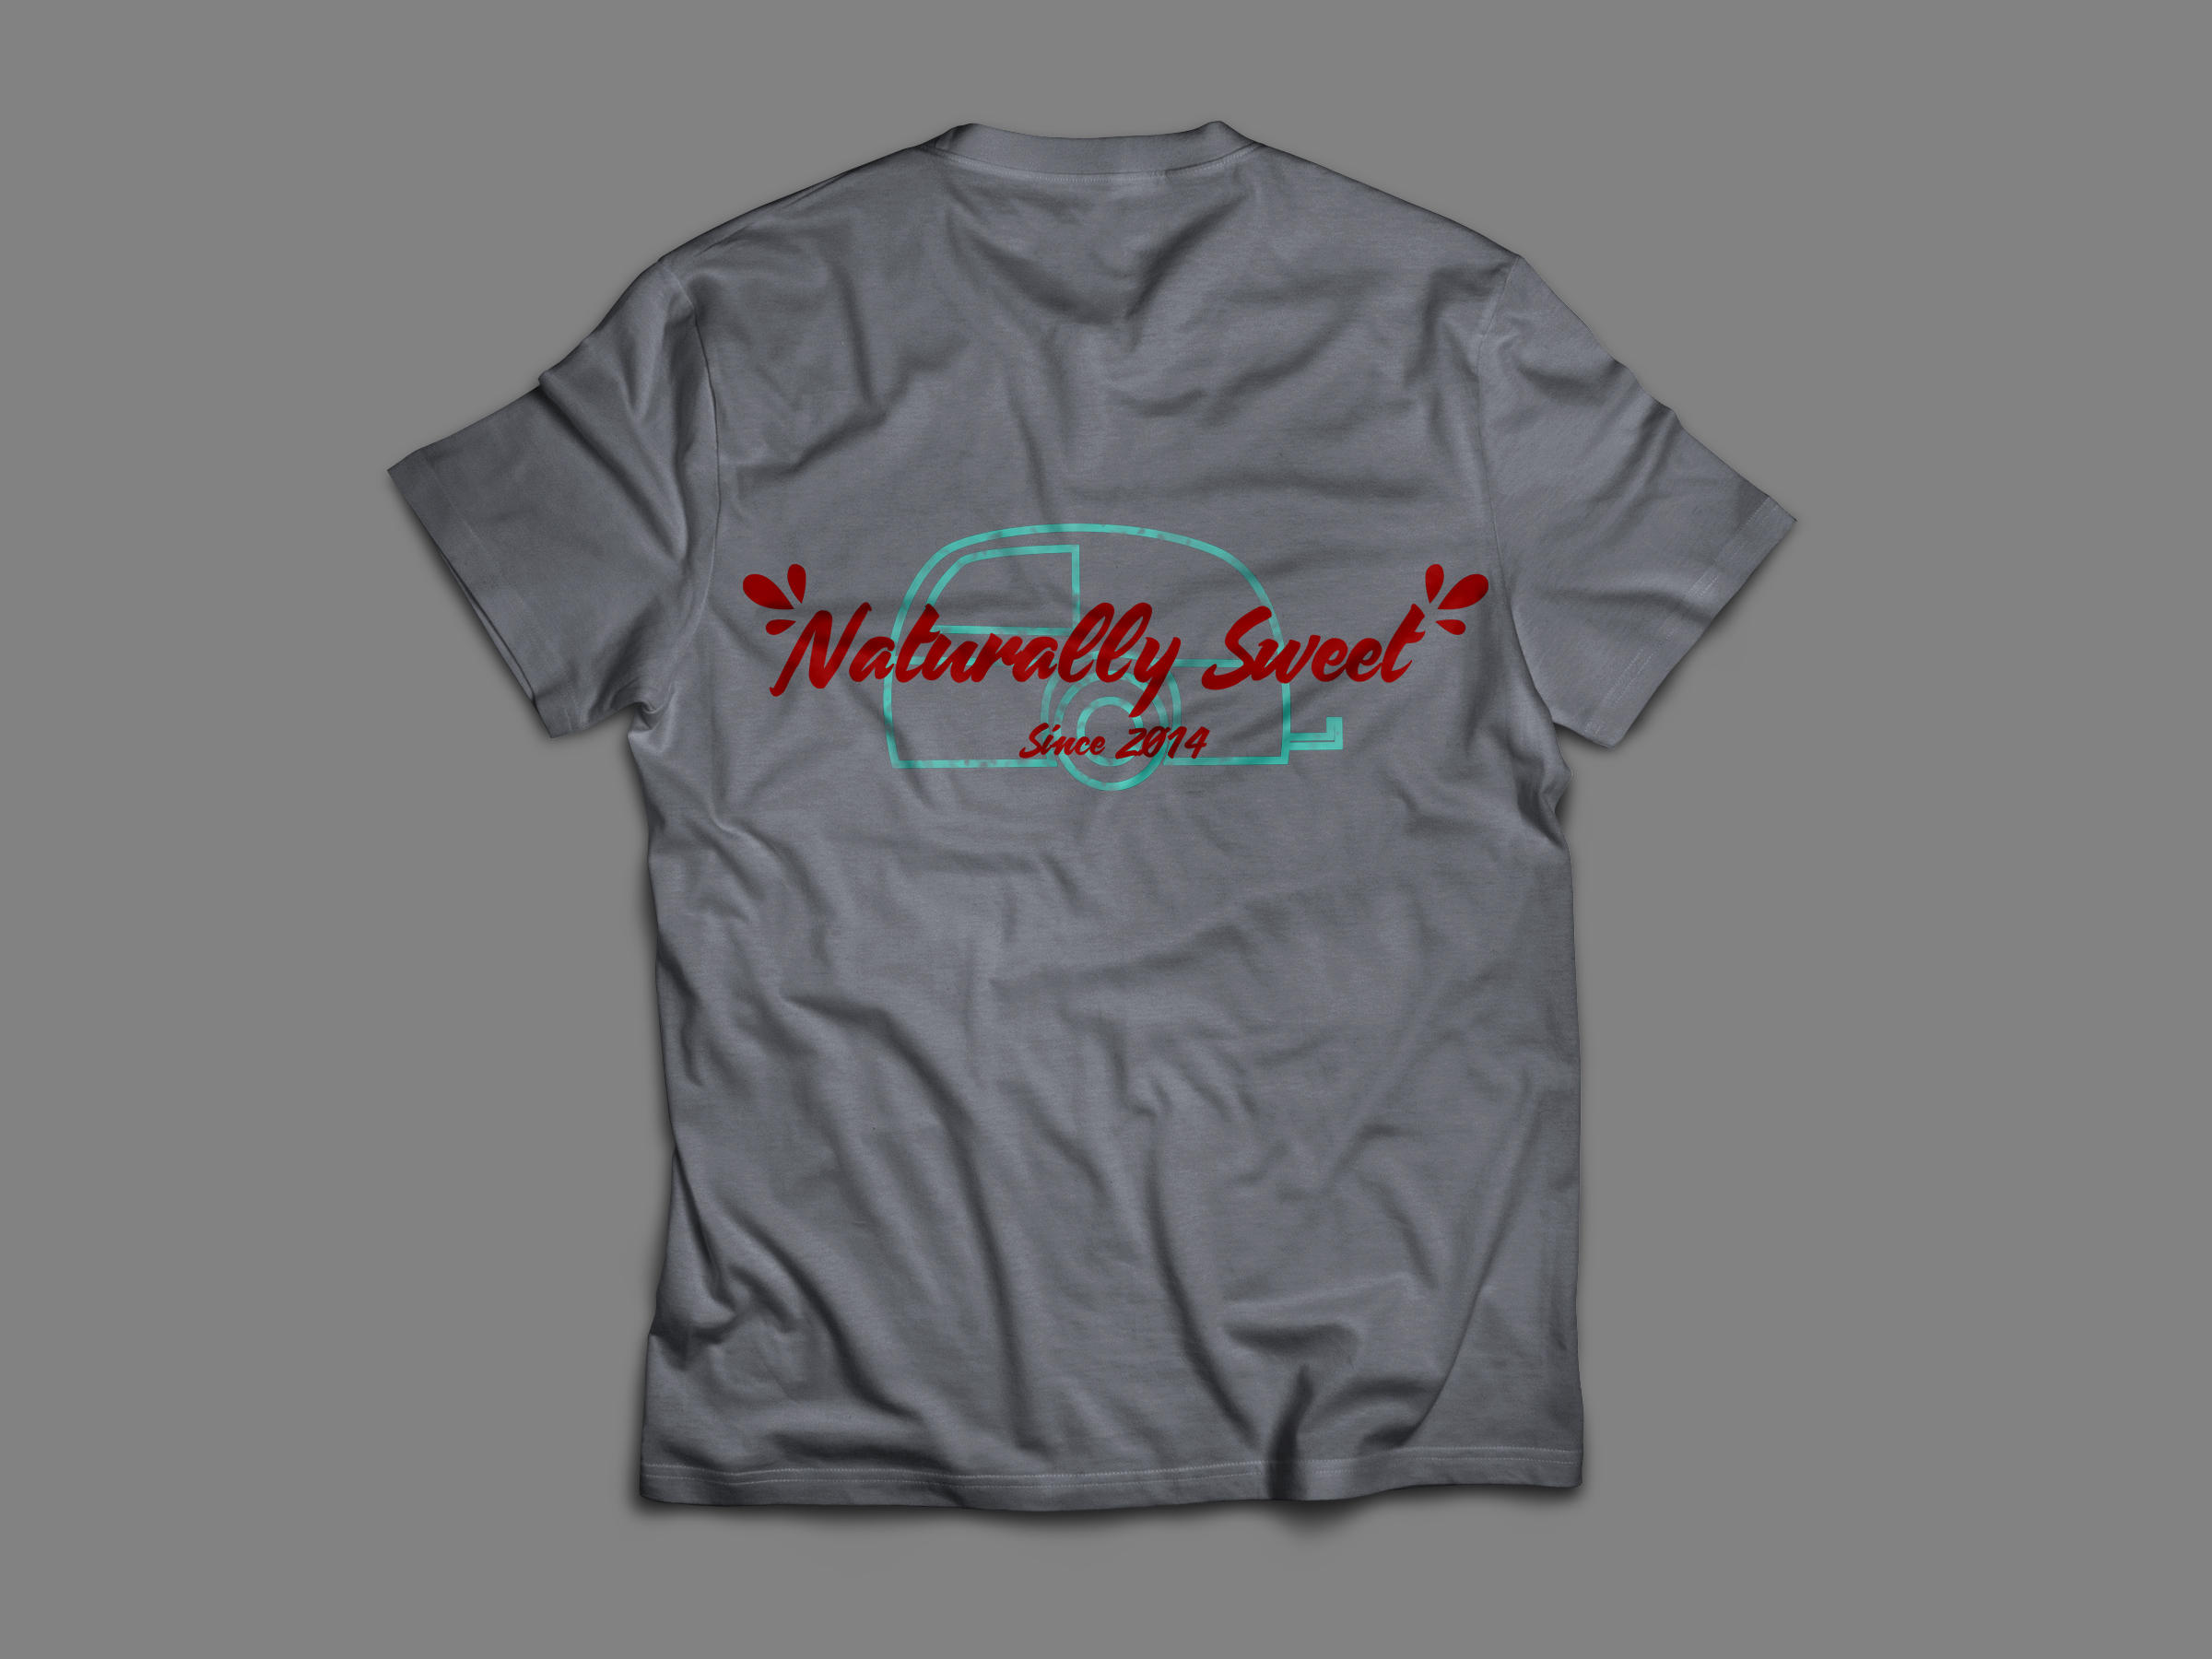 ns shirt back